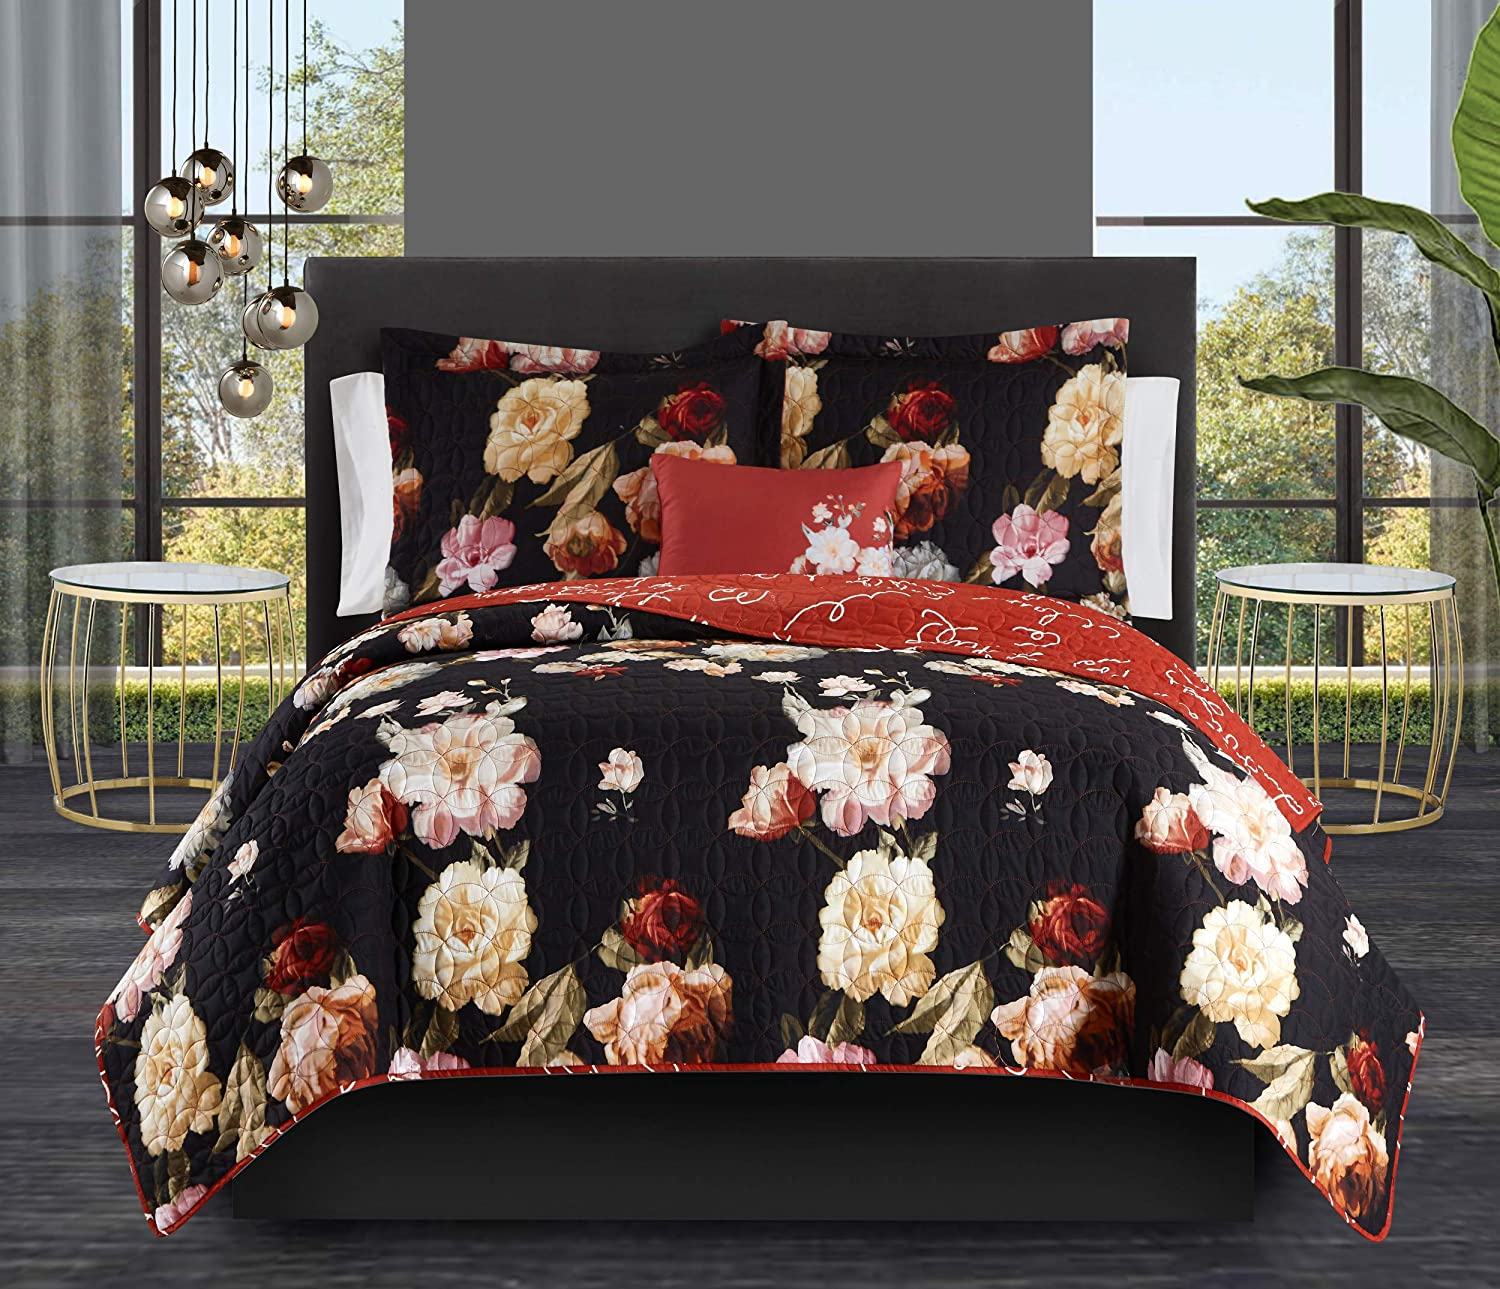 Chic Home Euphemia 4 Piece Reversible Ranking TOP12 Print Cur Floral Quilt Ranking TOP3 Set